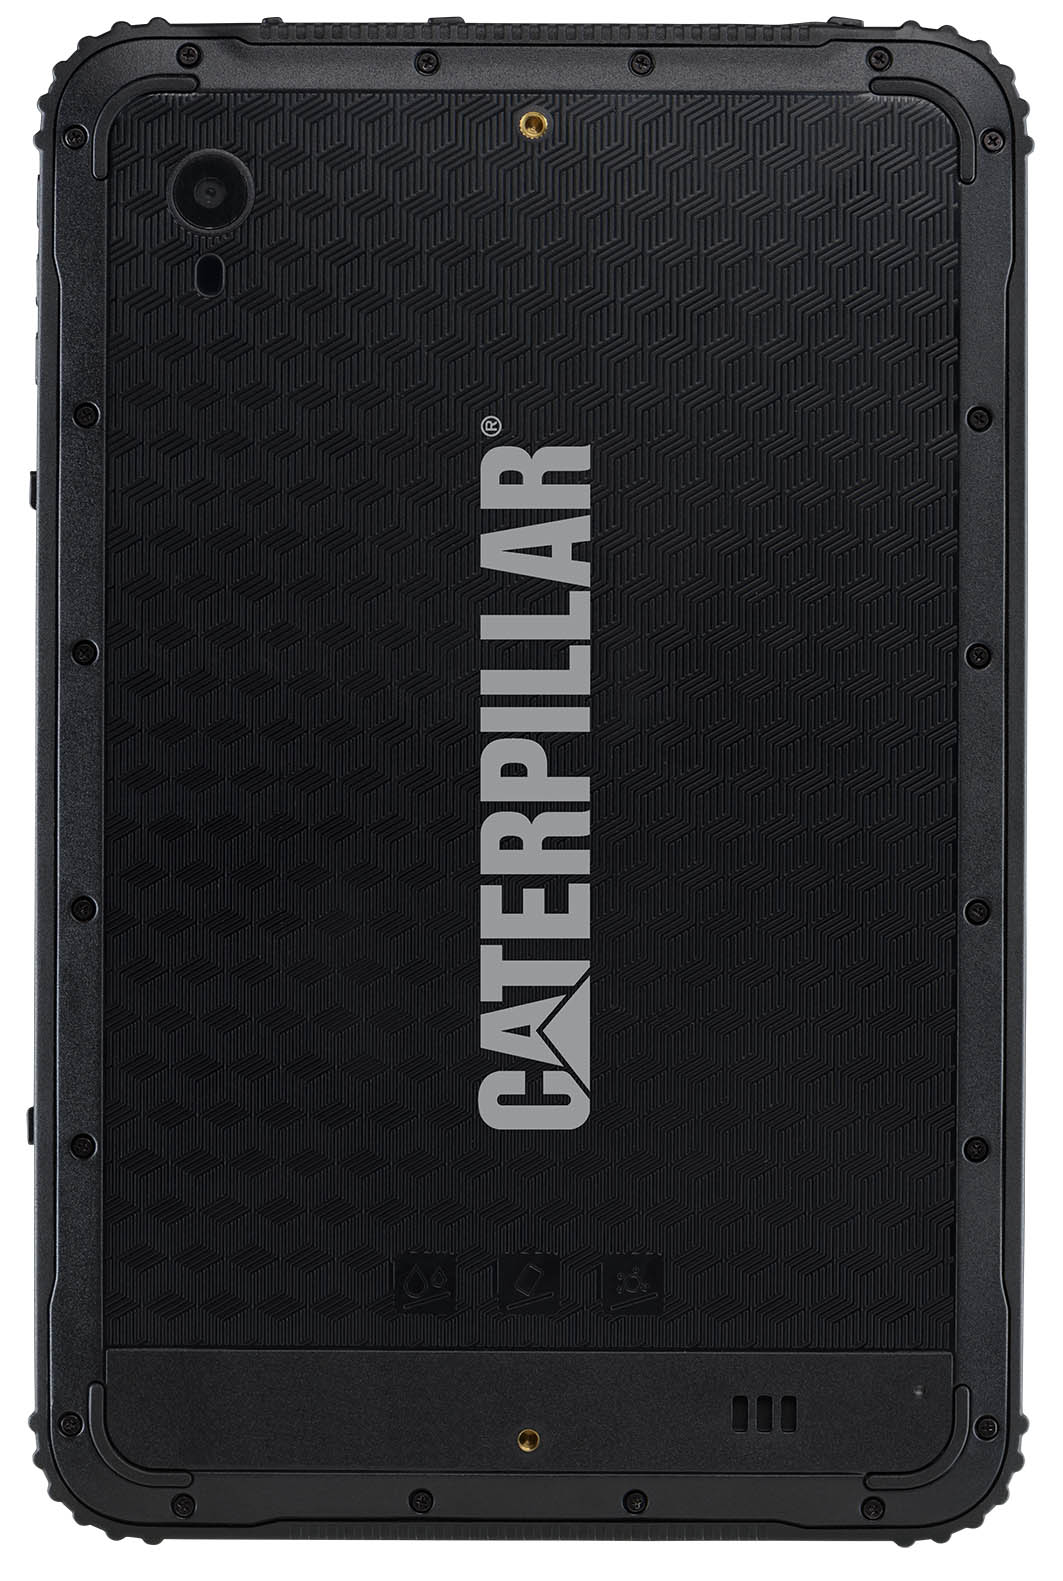 The Caterpillar 174 T20 Tablet A Rugged Tablet For Tough Work